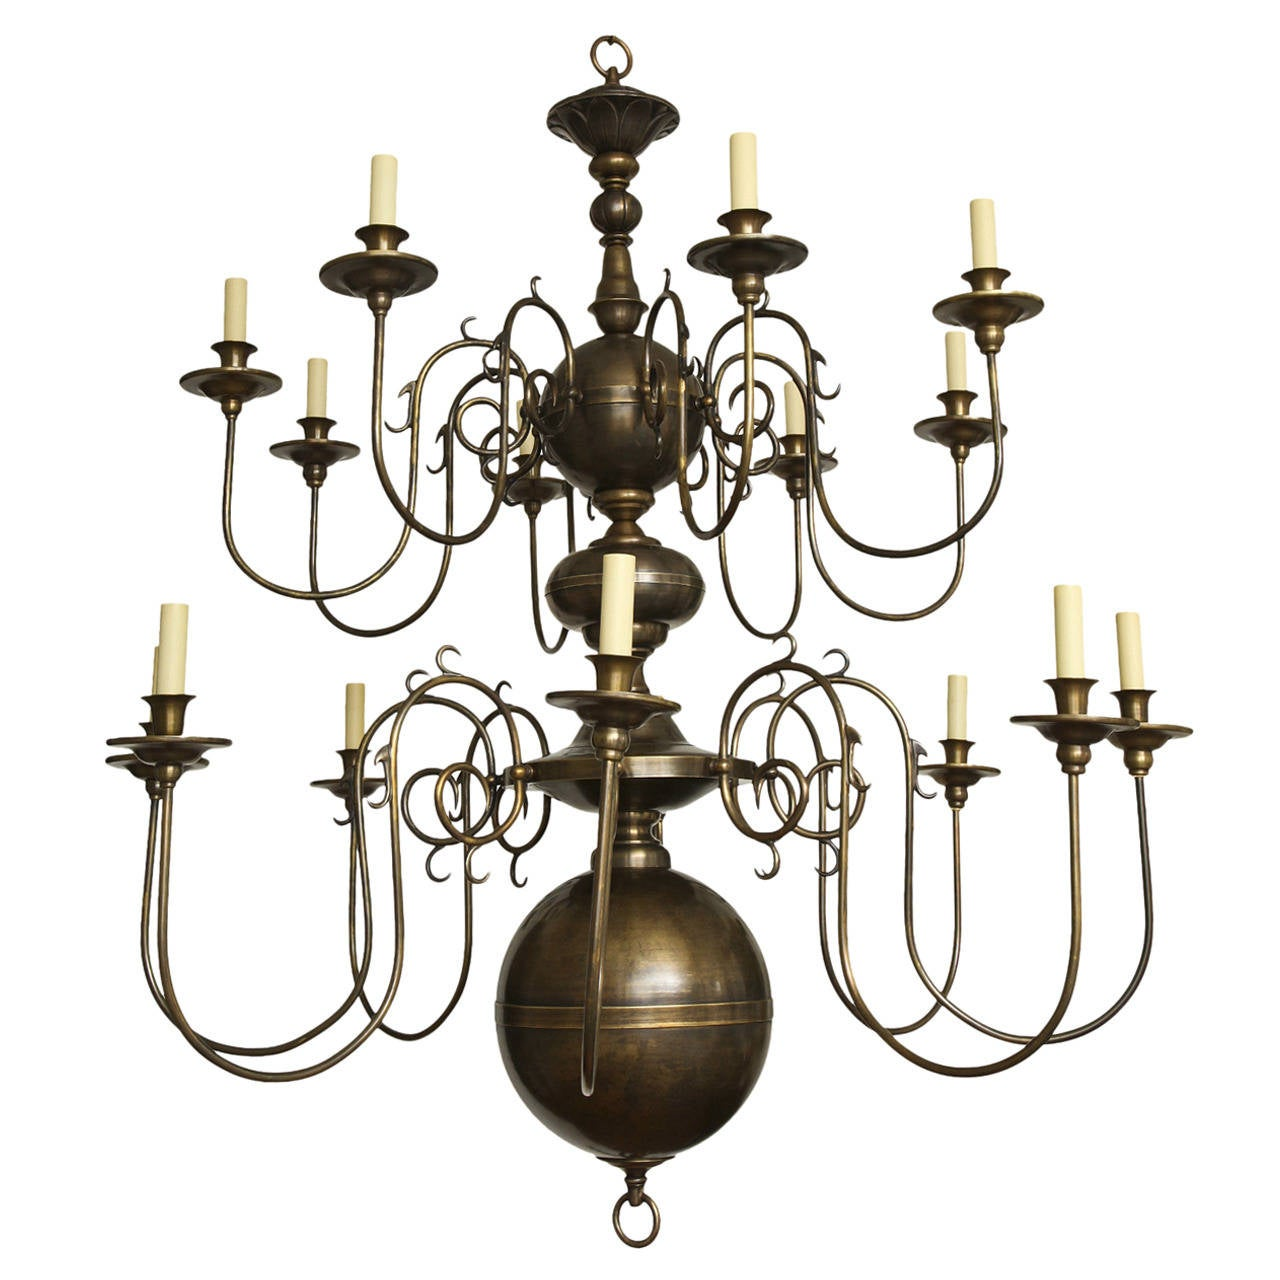 Philipse Two-Tier Sixteen-Light Chandelier For Sale